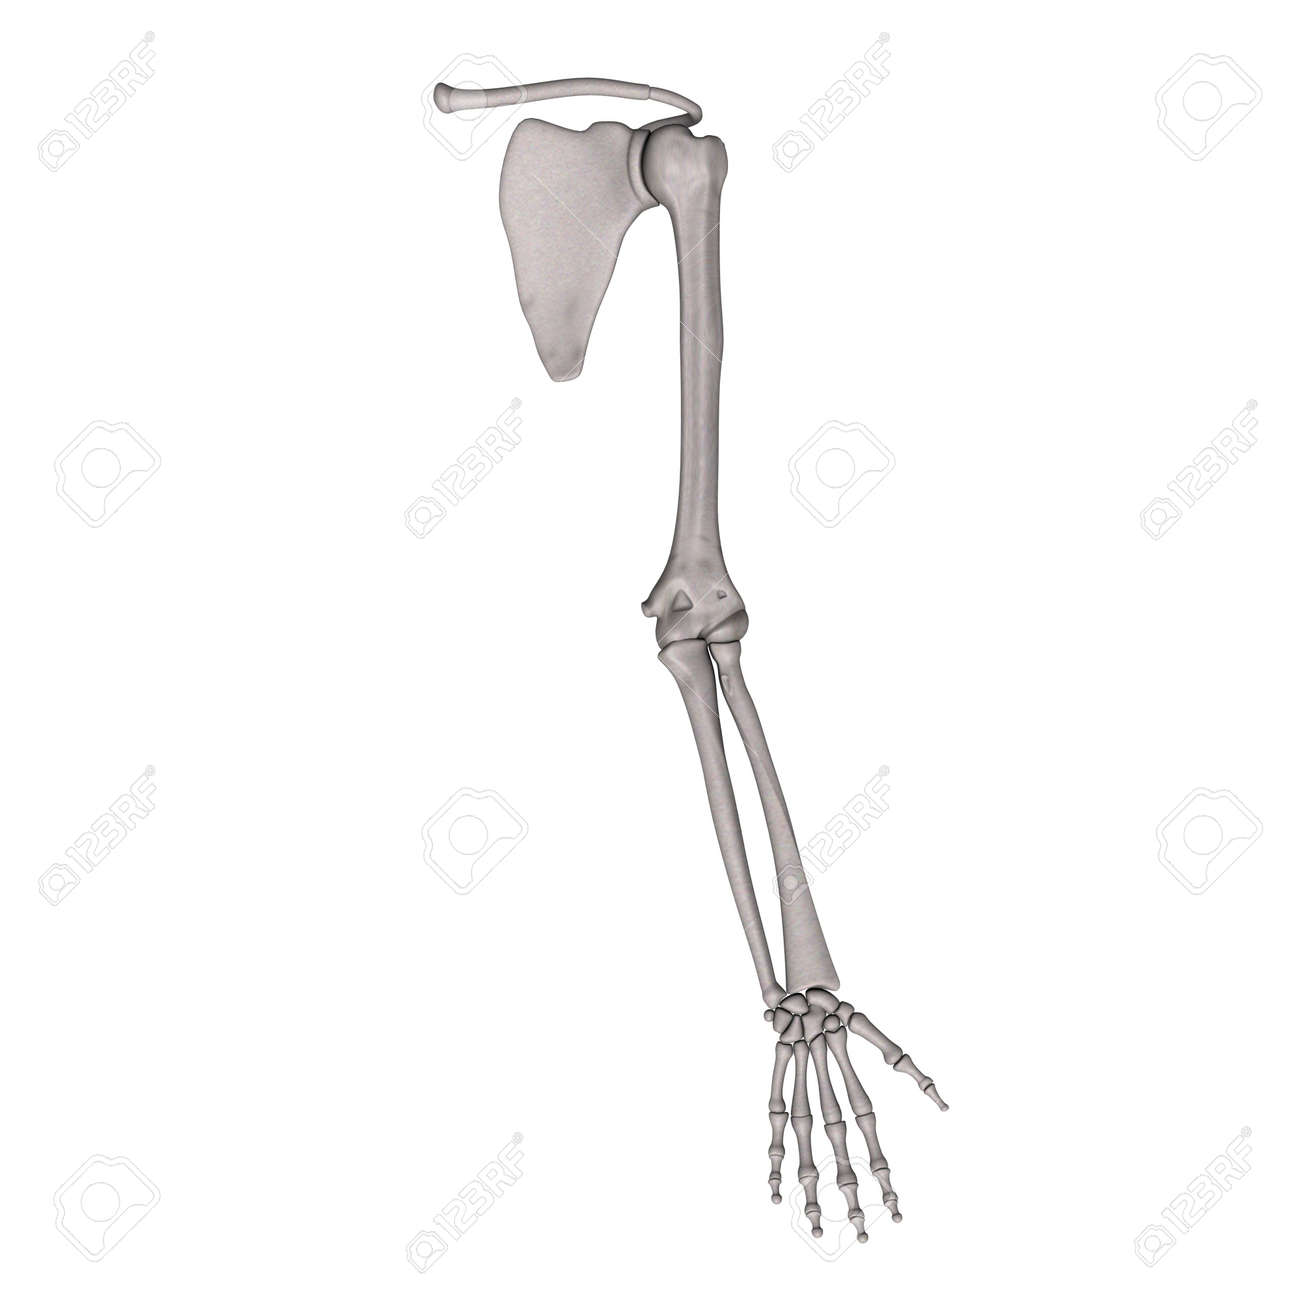 3d render of arm bones stock photo, picture and royalty free image, Human Body